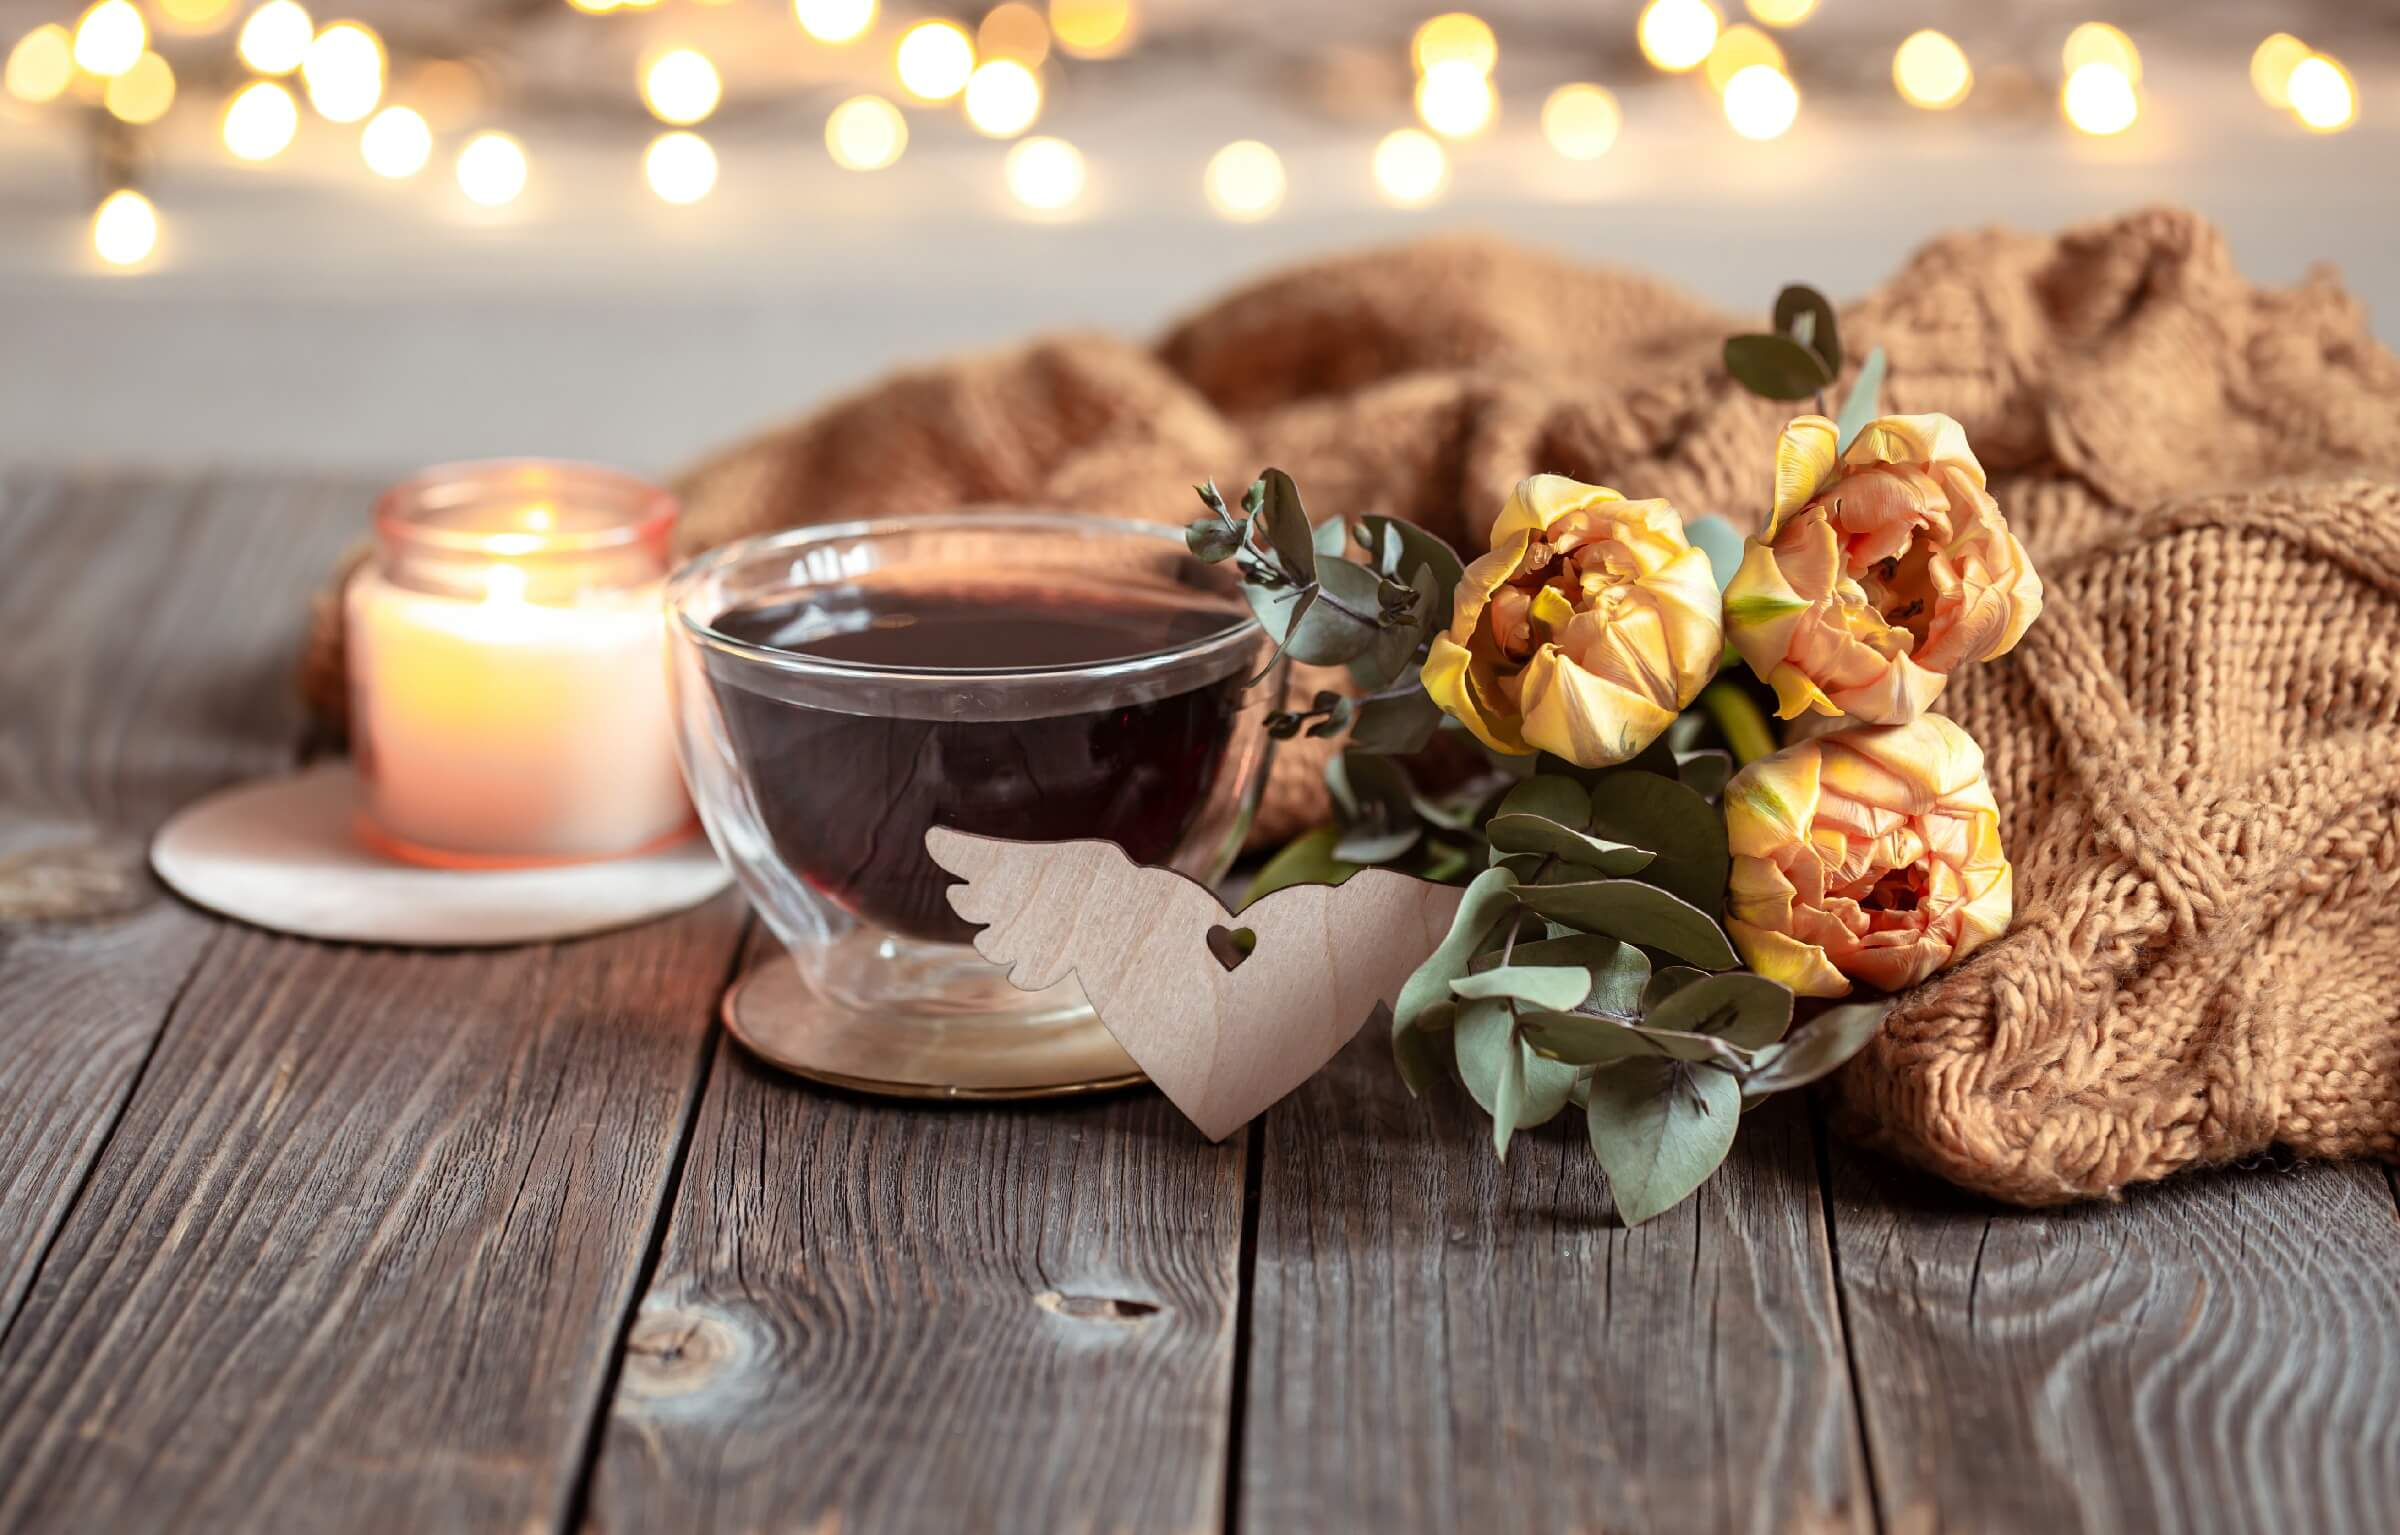 Valentine's day decoration ideas with candlelight